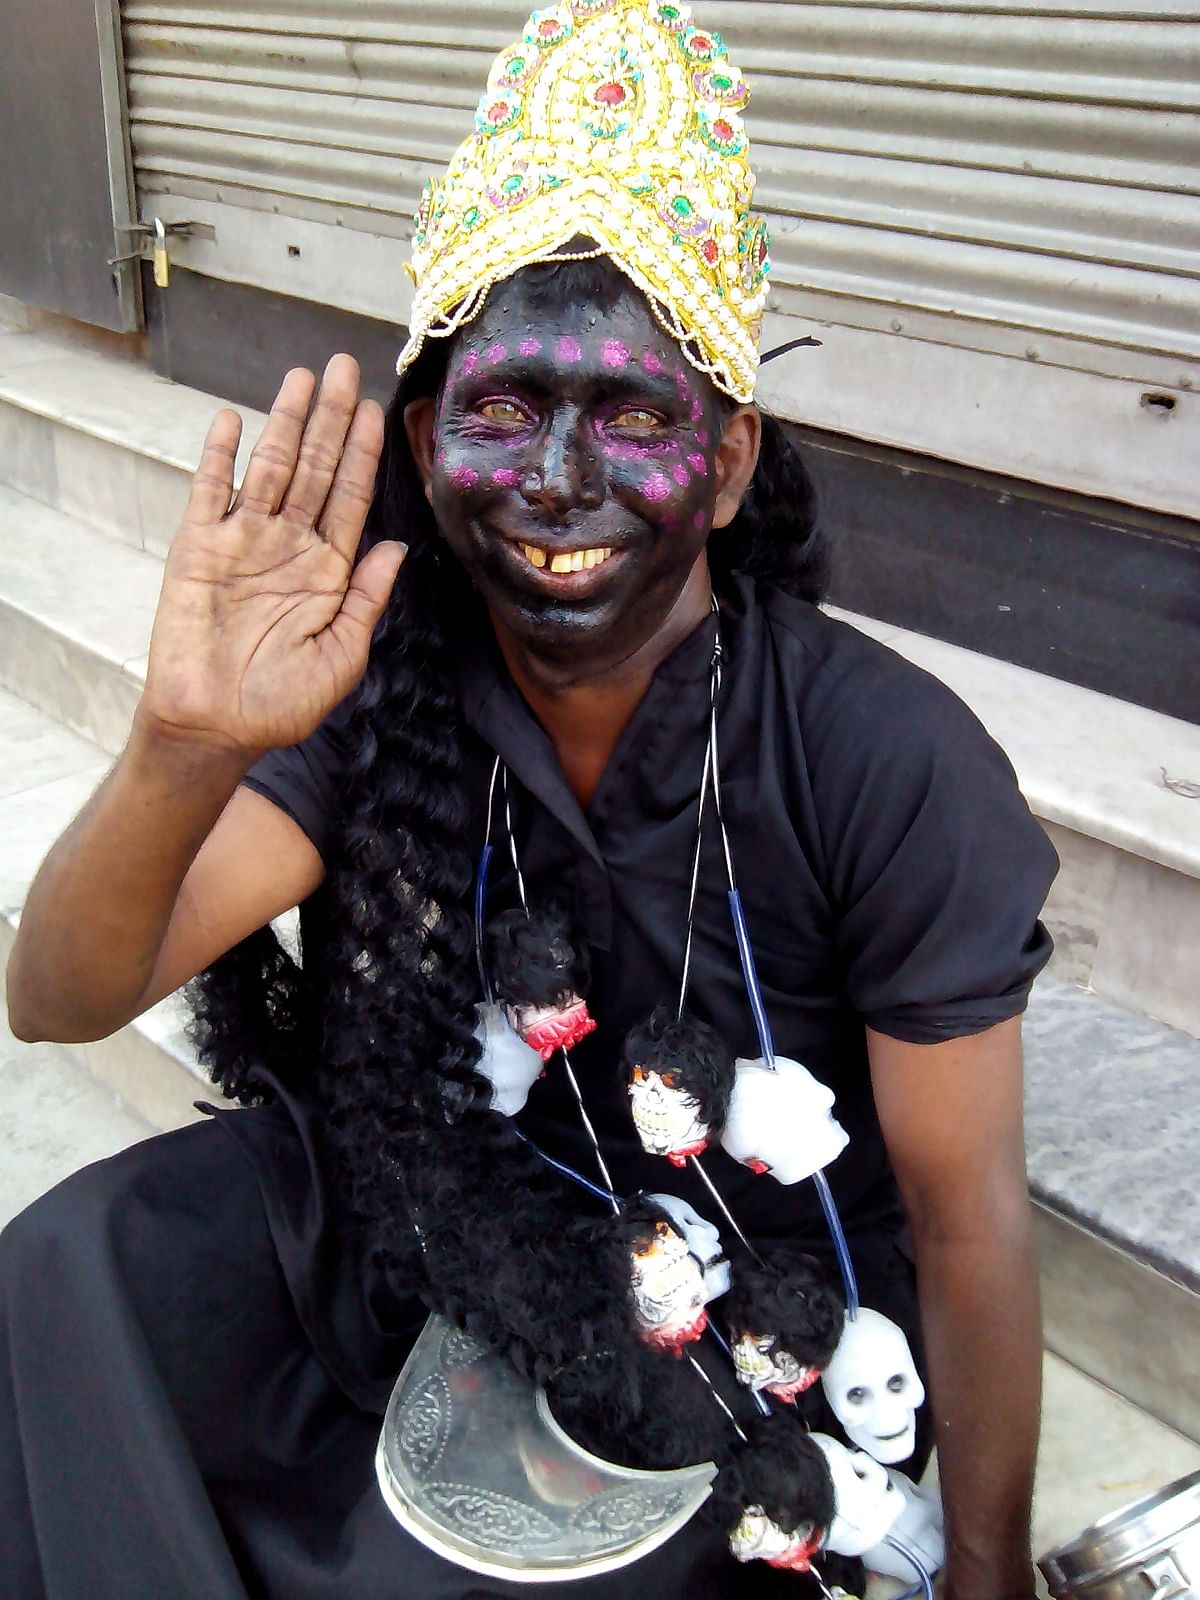 He was dressed to impersonate Goddess Kali.